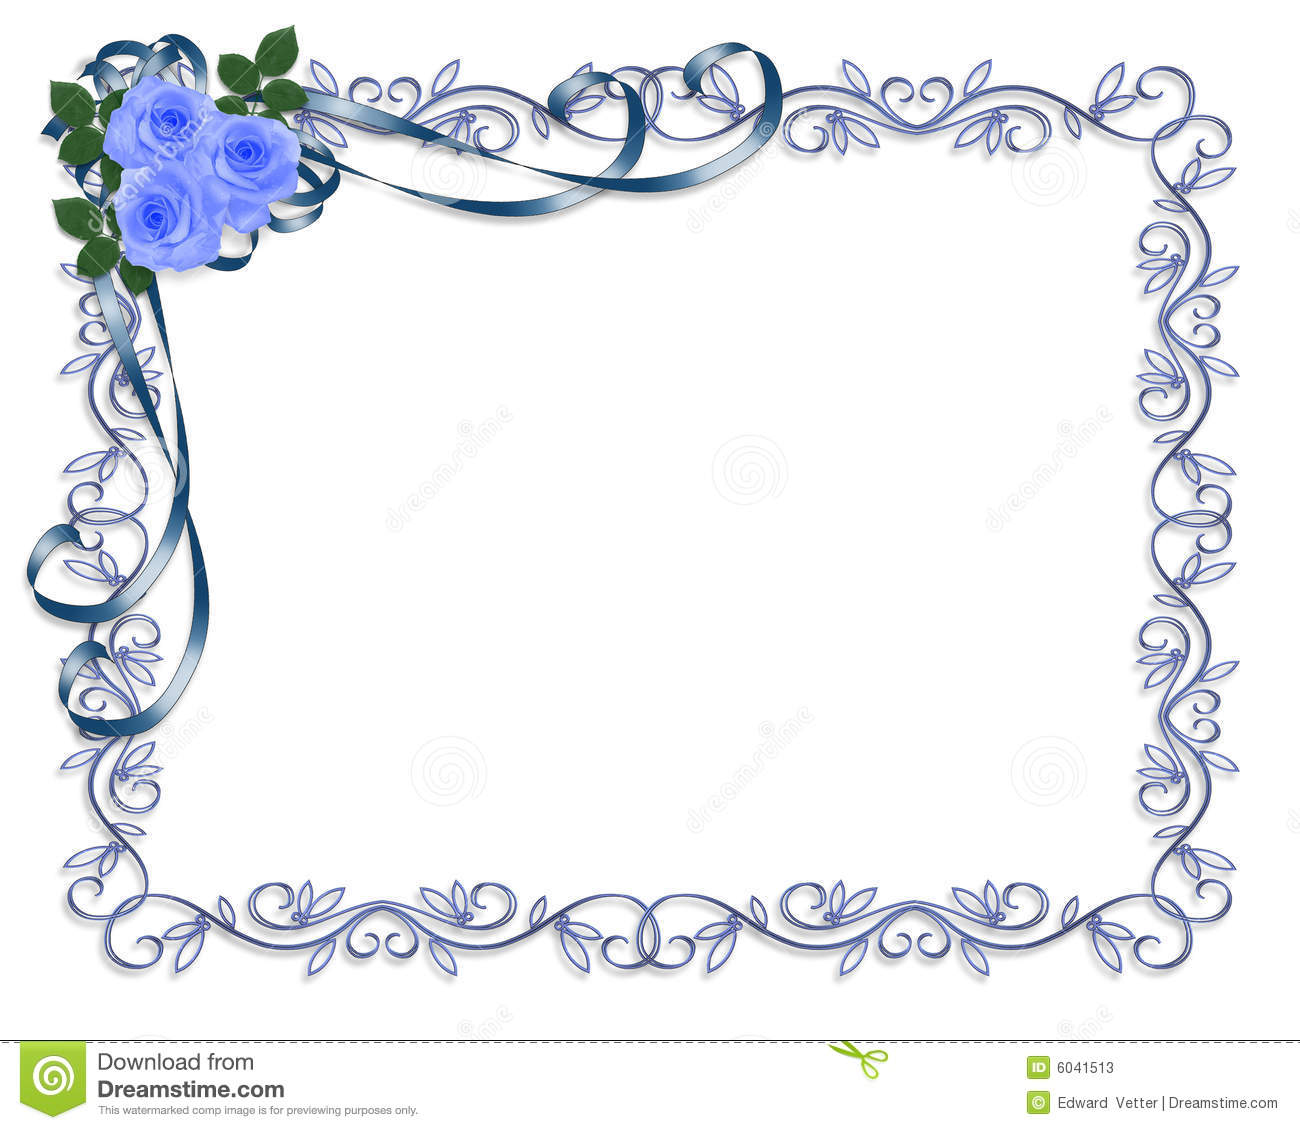 ... blue design element for Valentine, wedding background, border or frame